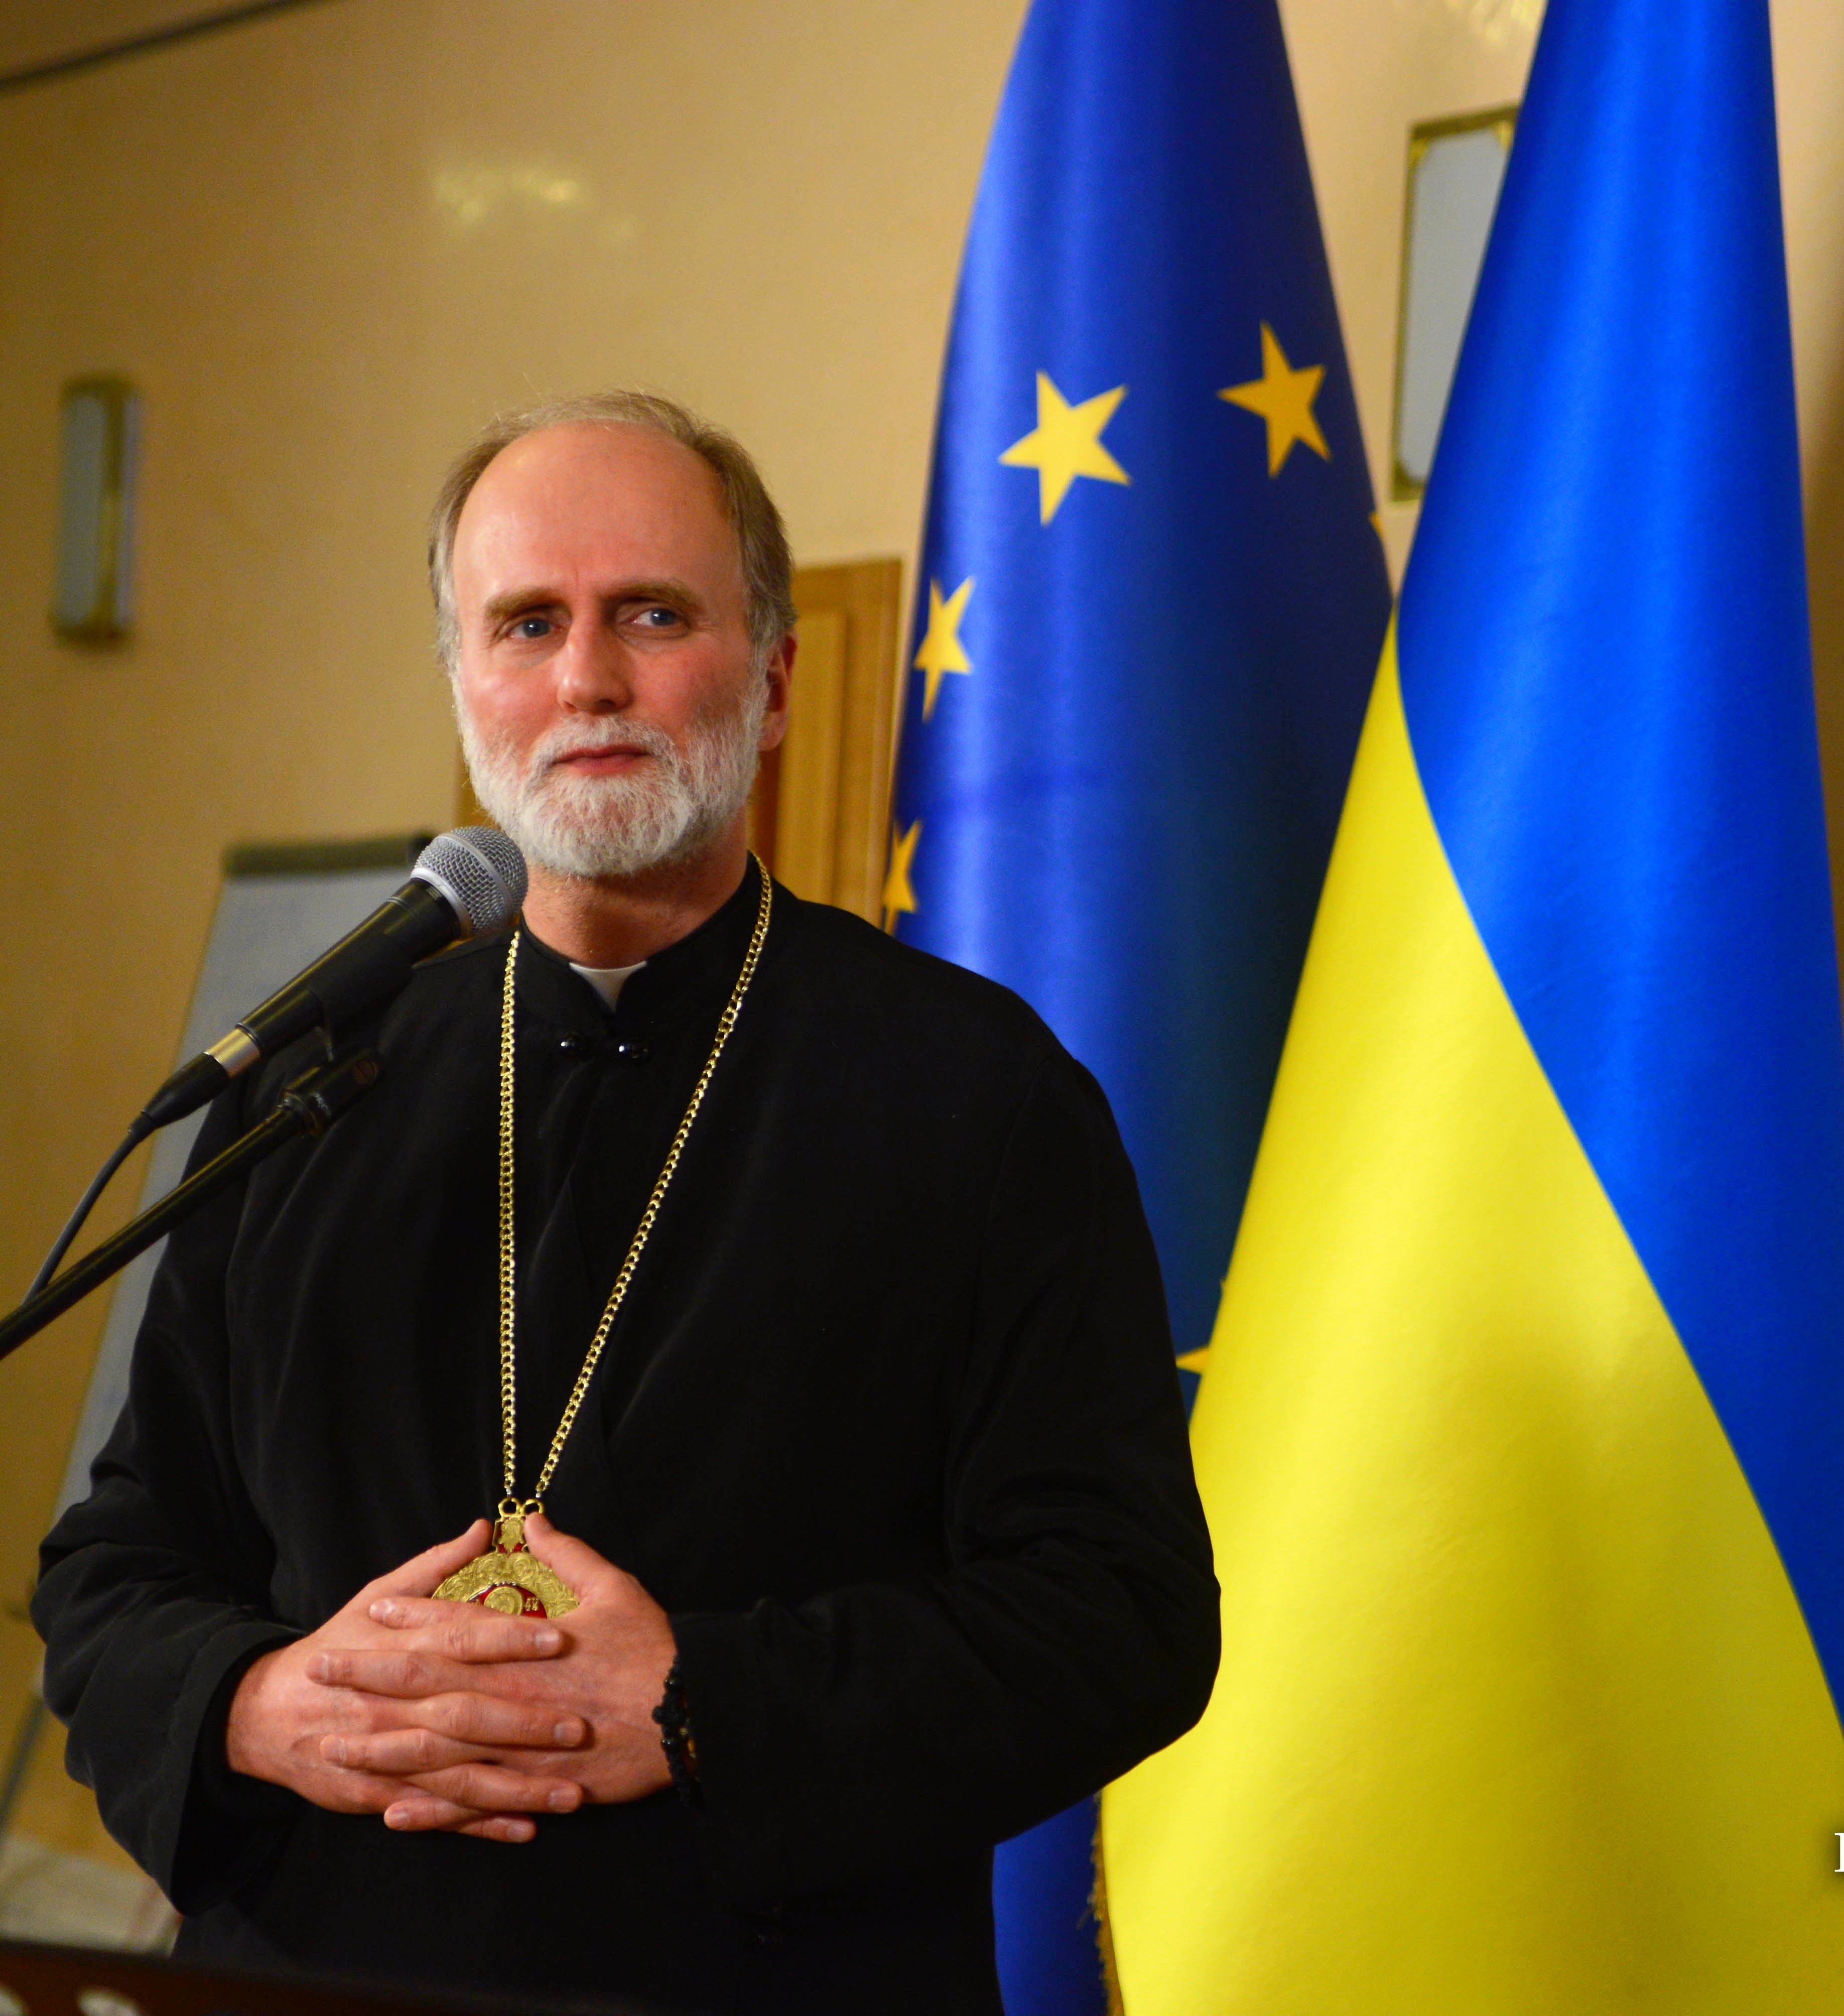 A Ukrainian pastor who stood up for the 'martyrs and the m